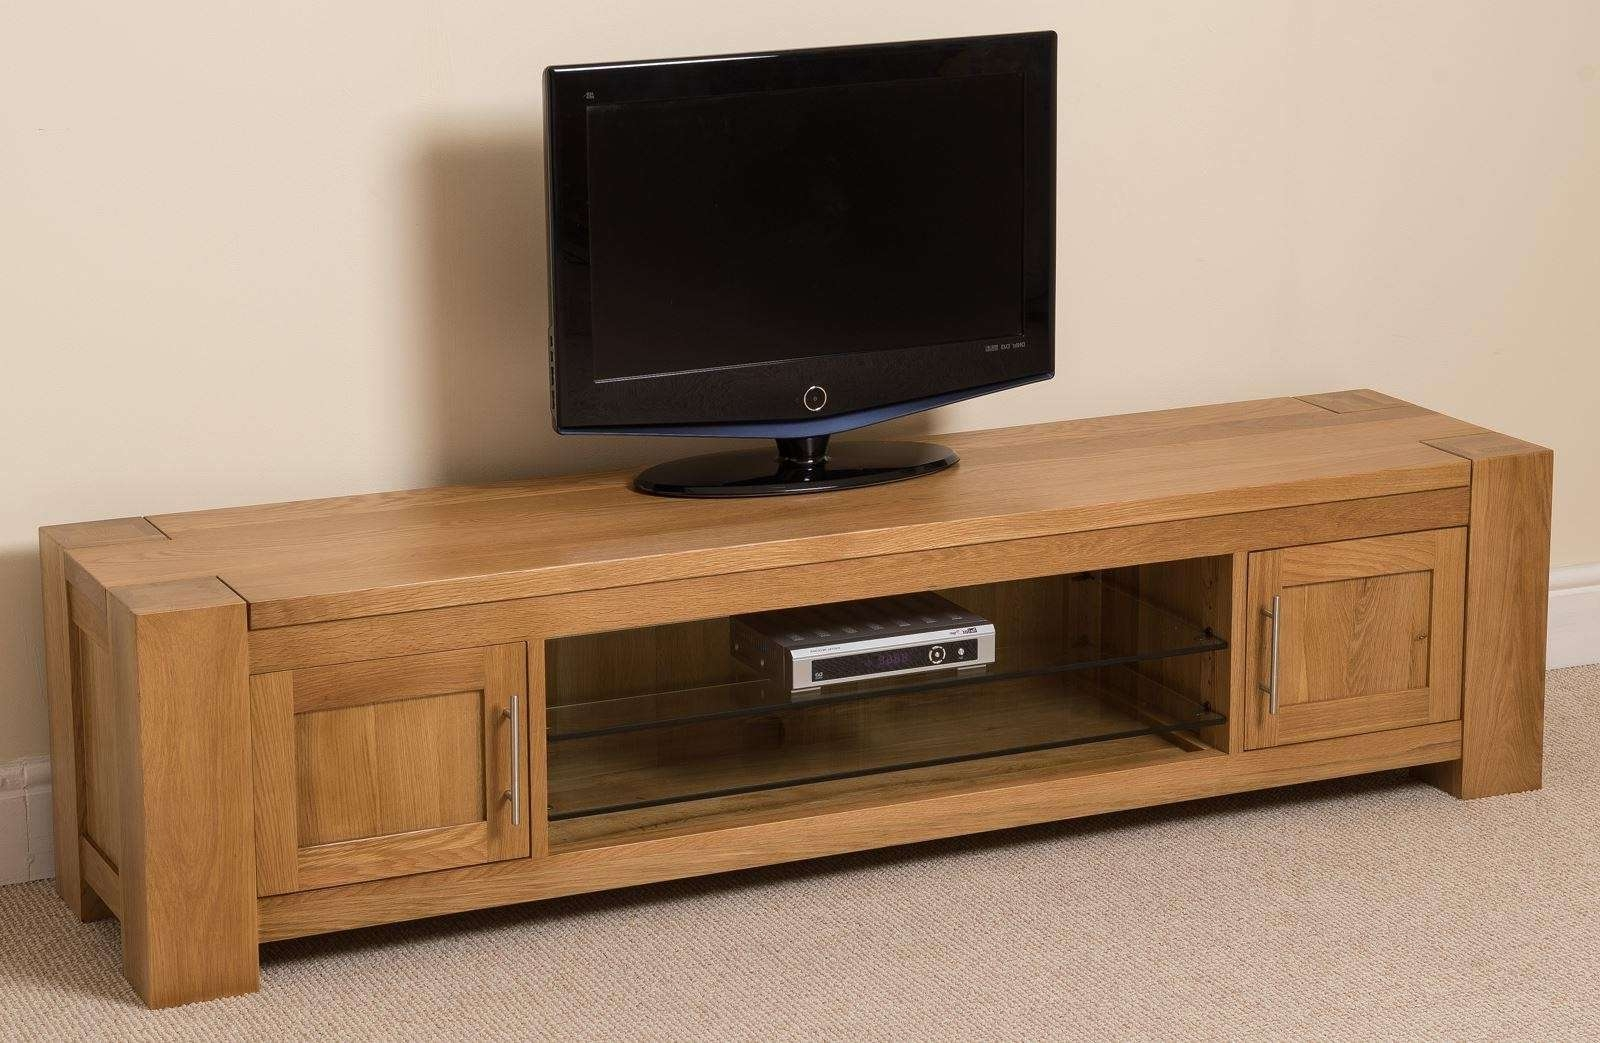 Kuba Solid Widescreen Tv Cabinet | Oak Furniture King With Regard To Wide Screen Tv Stands (Gallery 6 of 15)